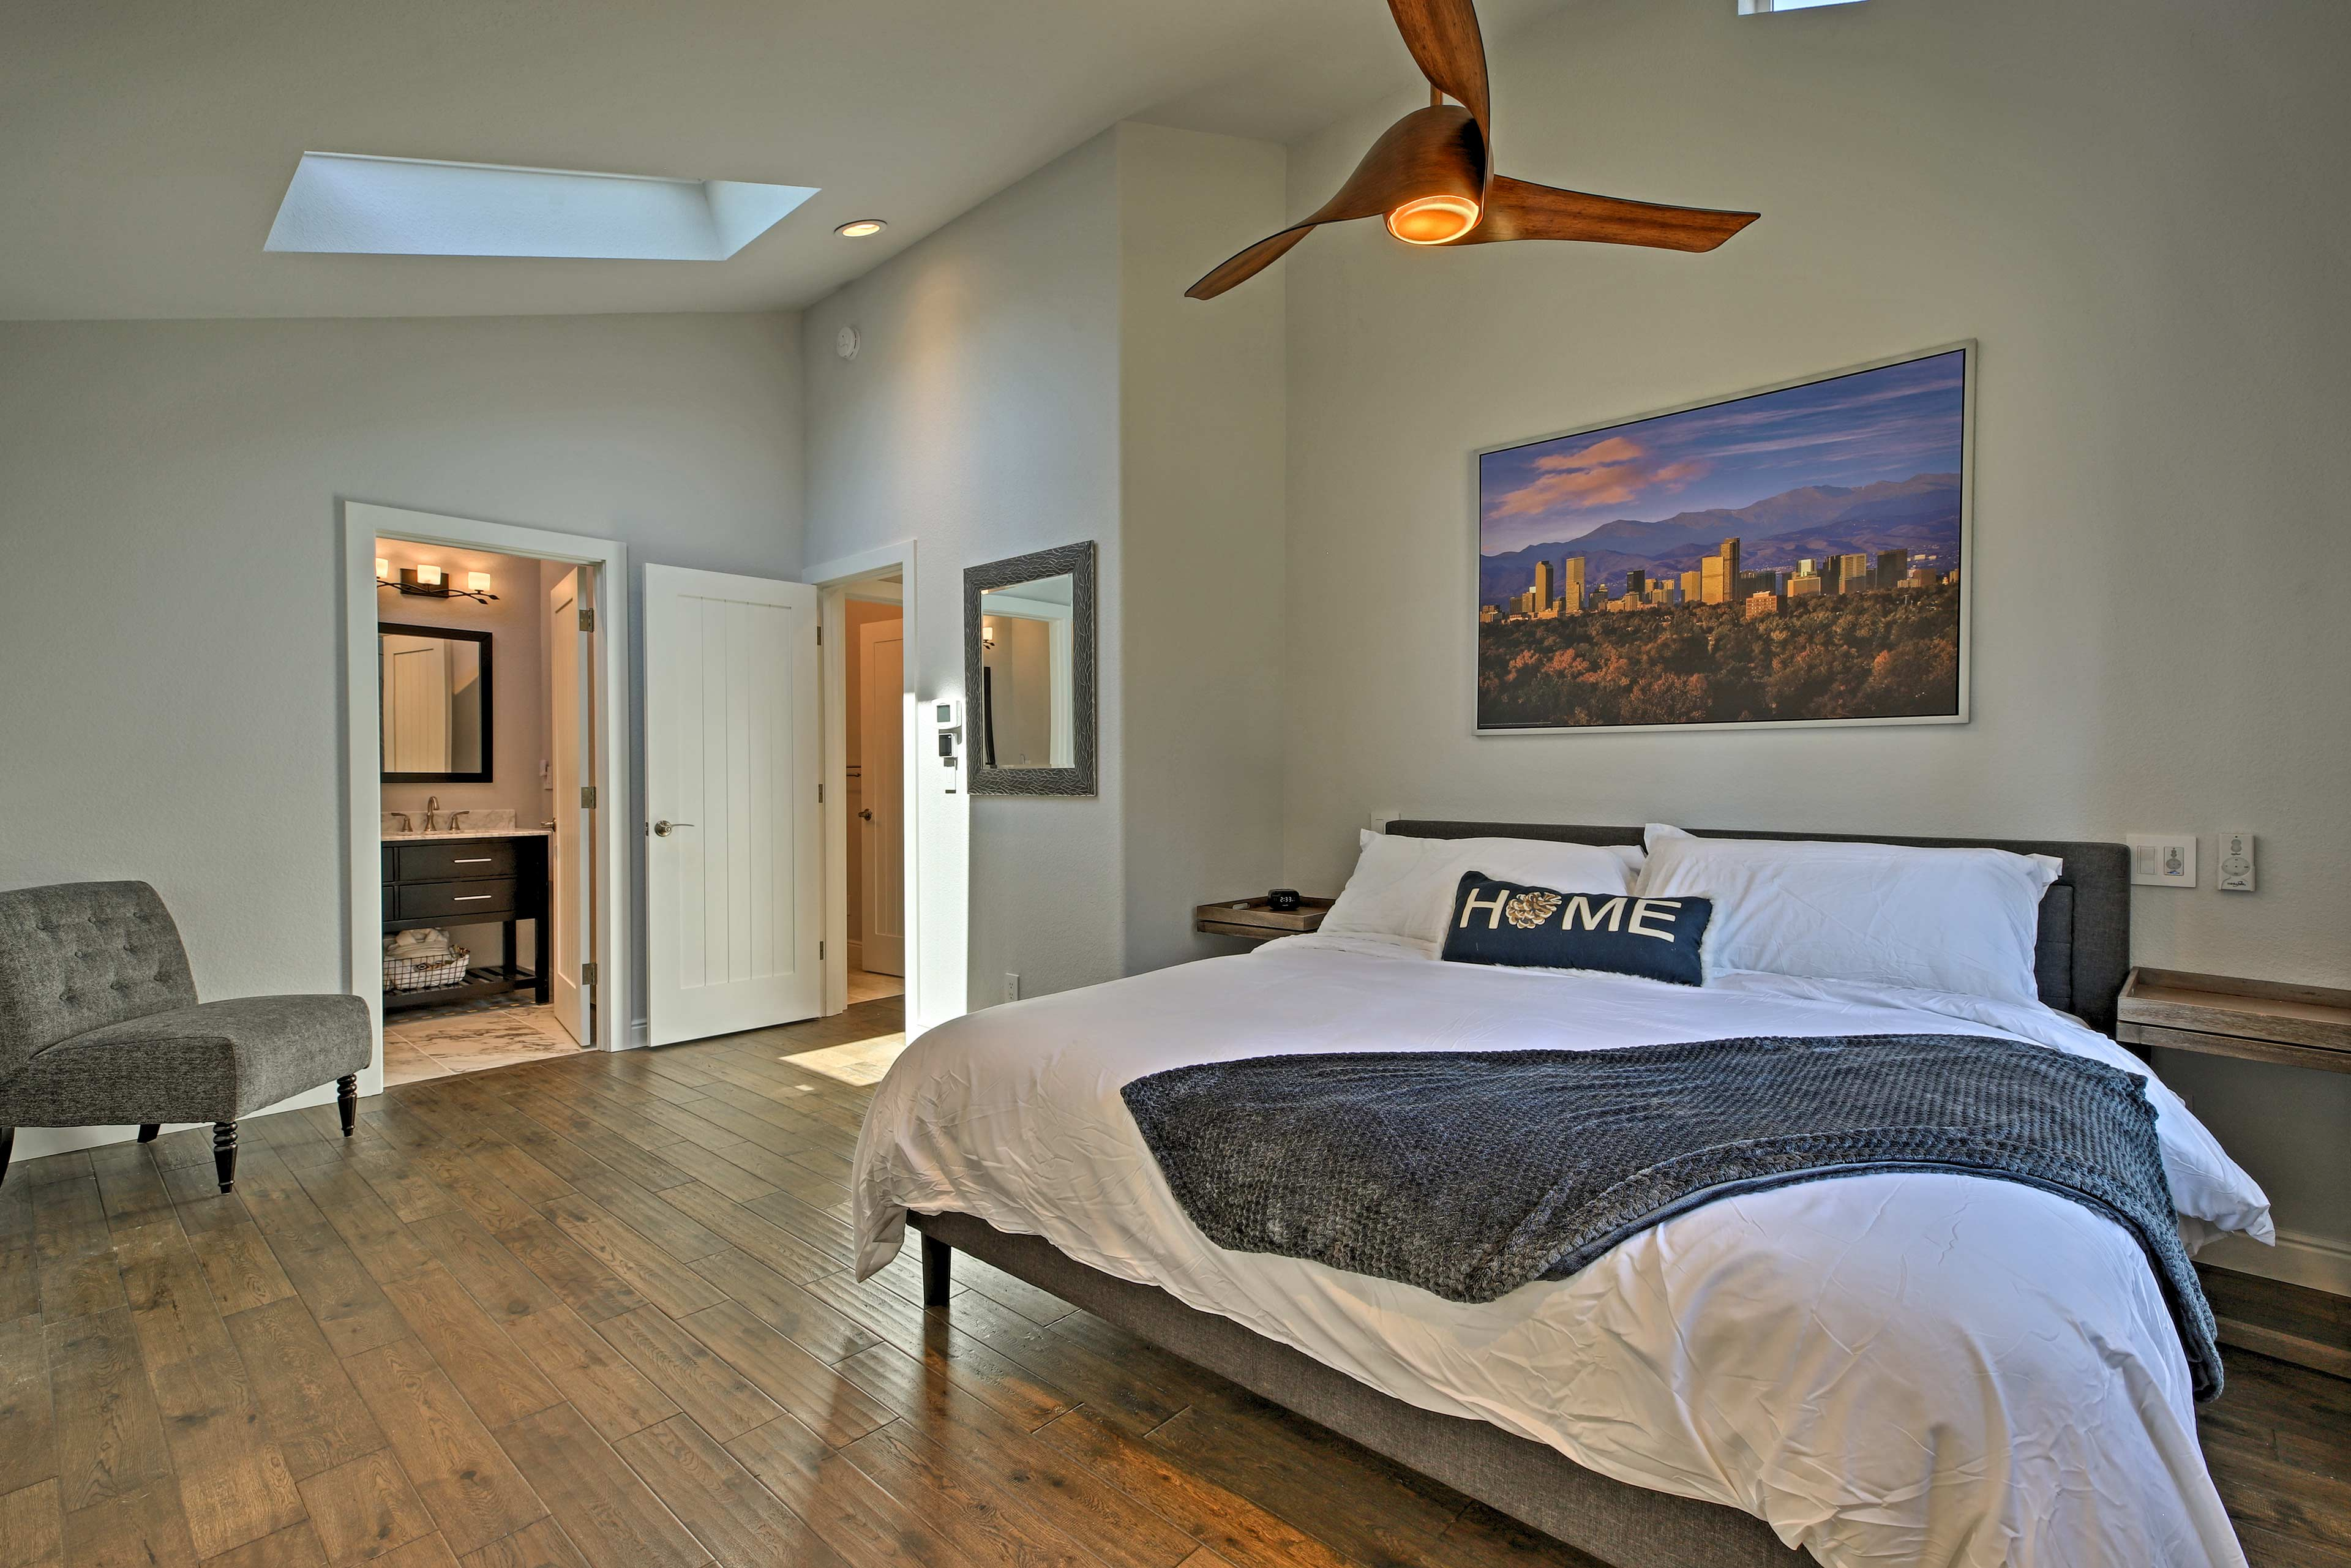 Let the ceiling fan usher you to sleep.